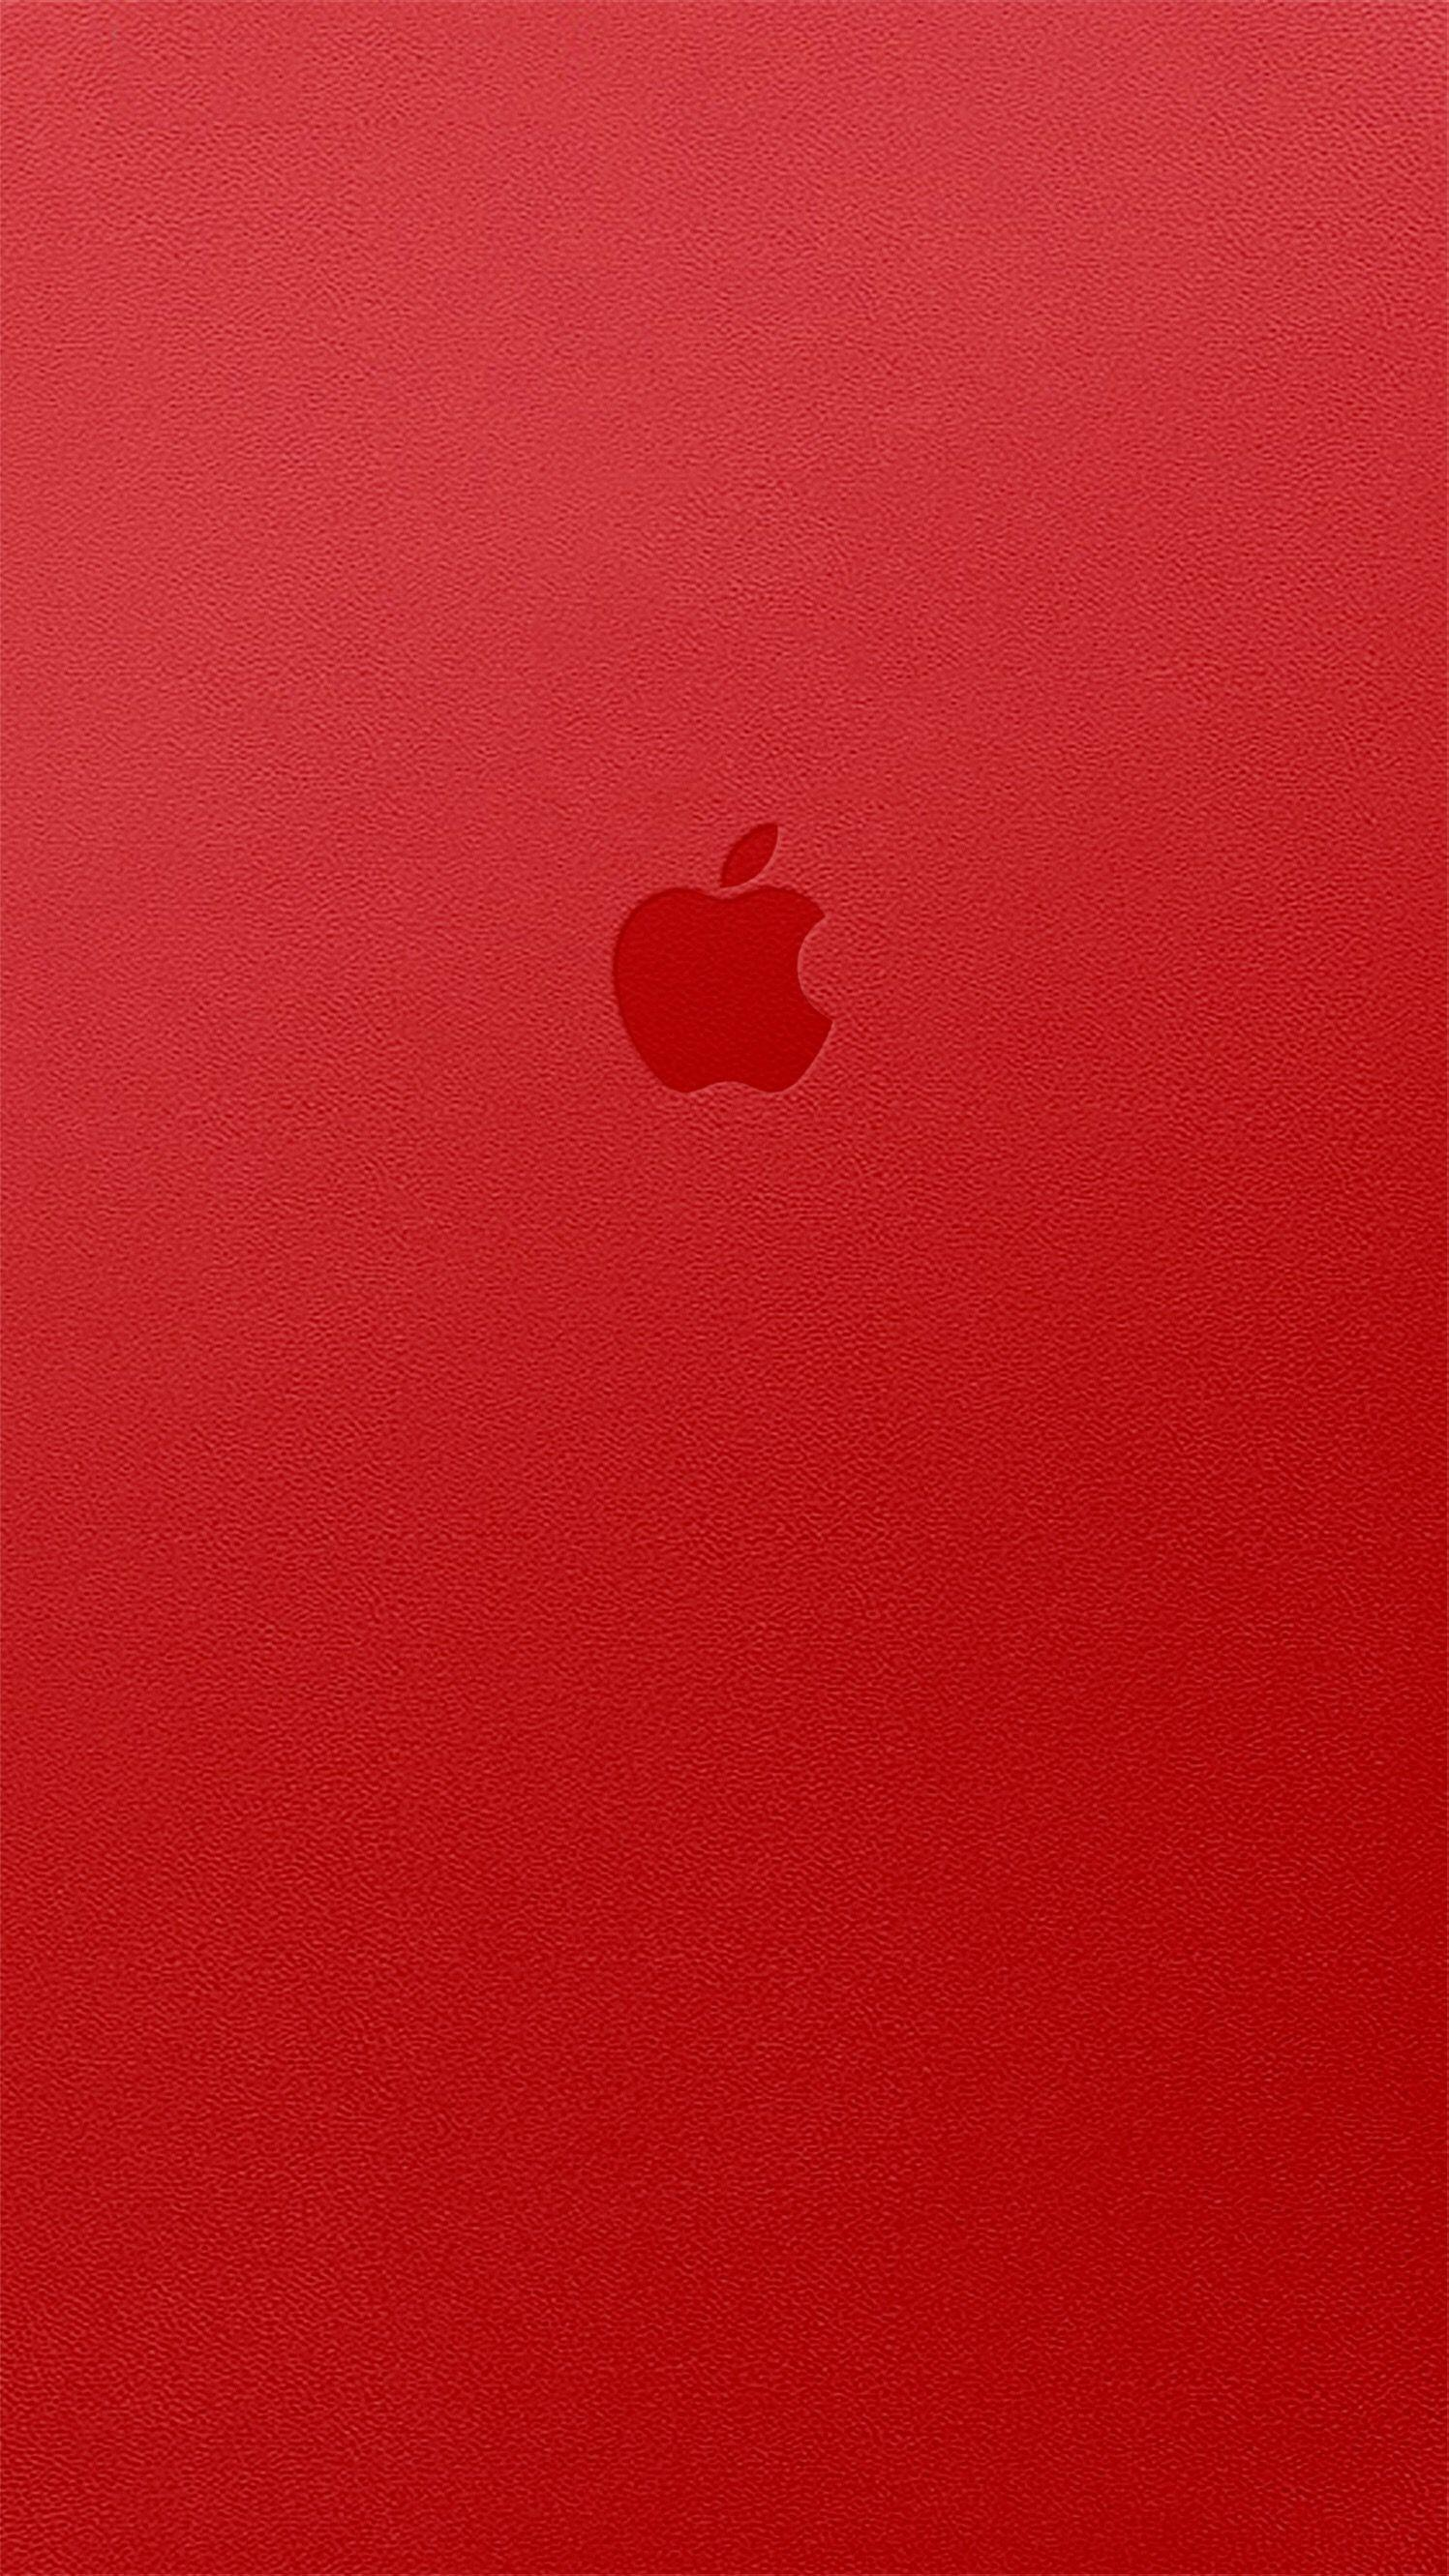 IPhone Leather Wallpapers HD Desktop Backgrounds x | HD Wallpapers ...